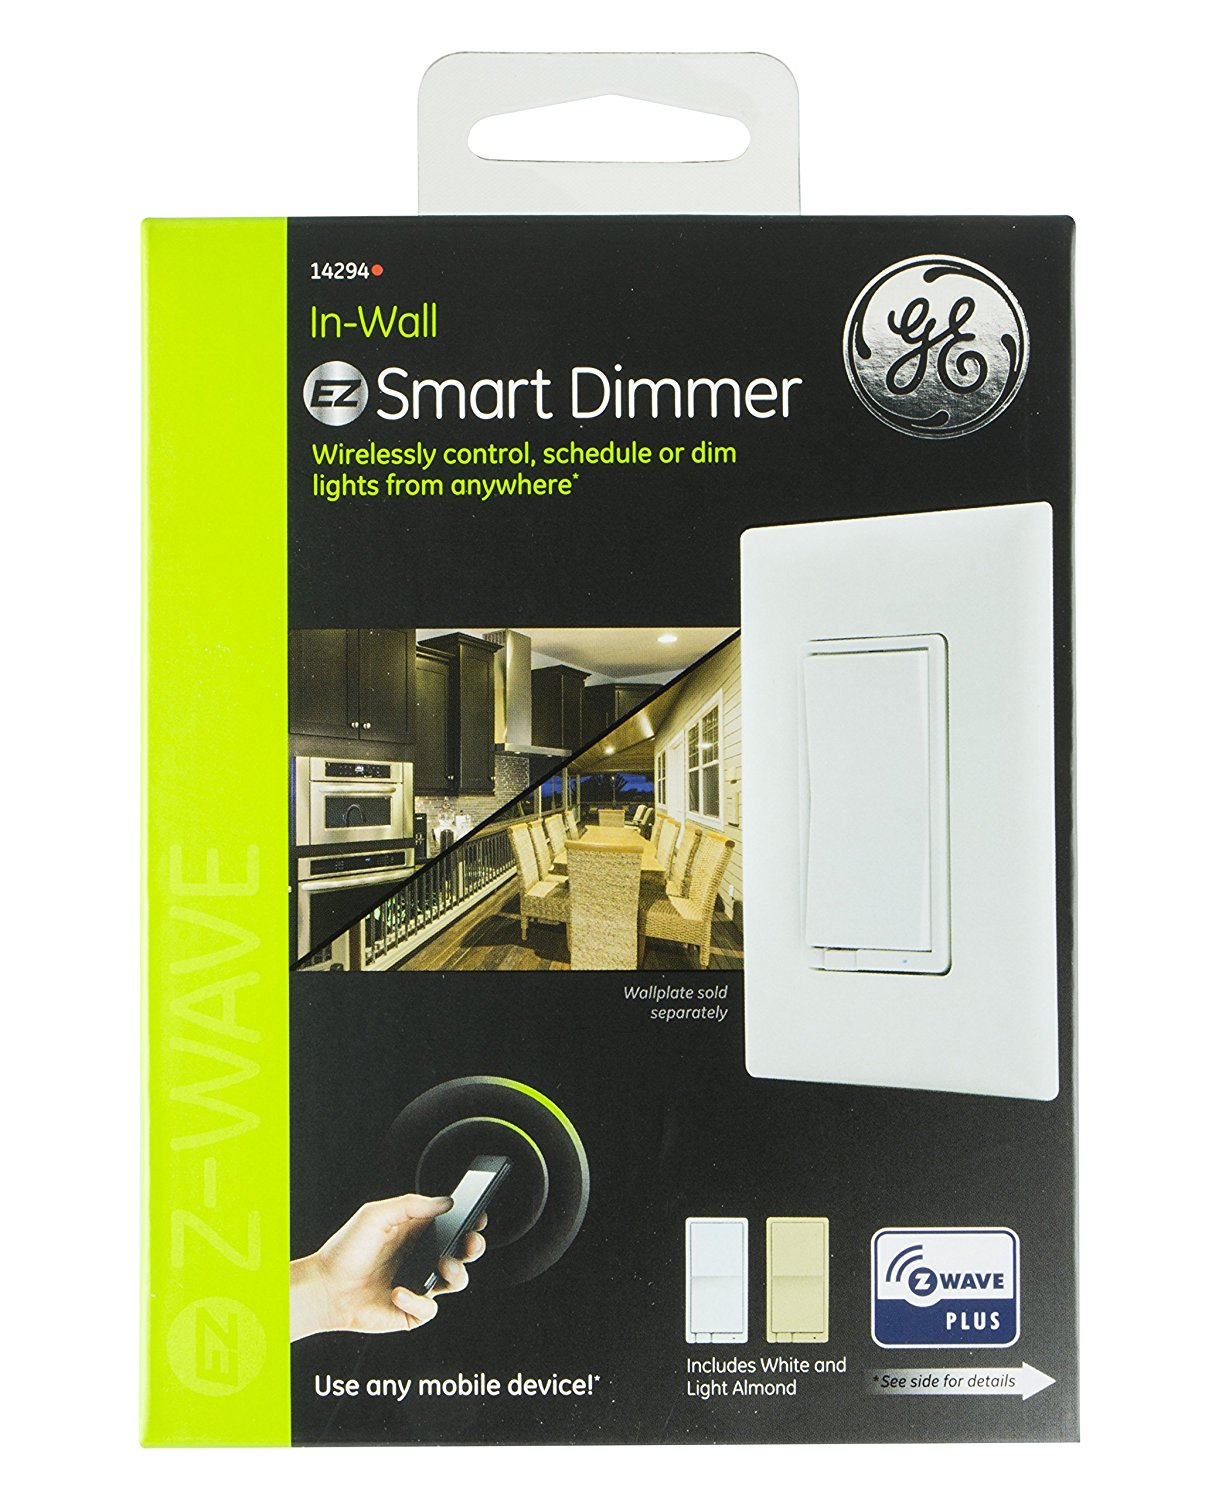 GE Z-Wave Plus Wireless Smart Lighting Control Smart Dimmer Switch